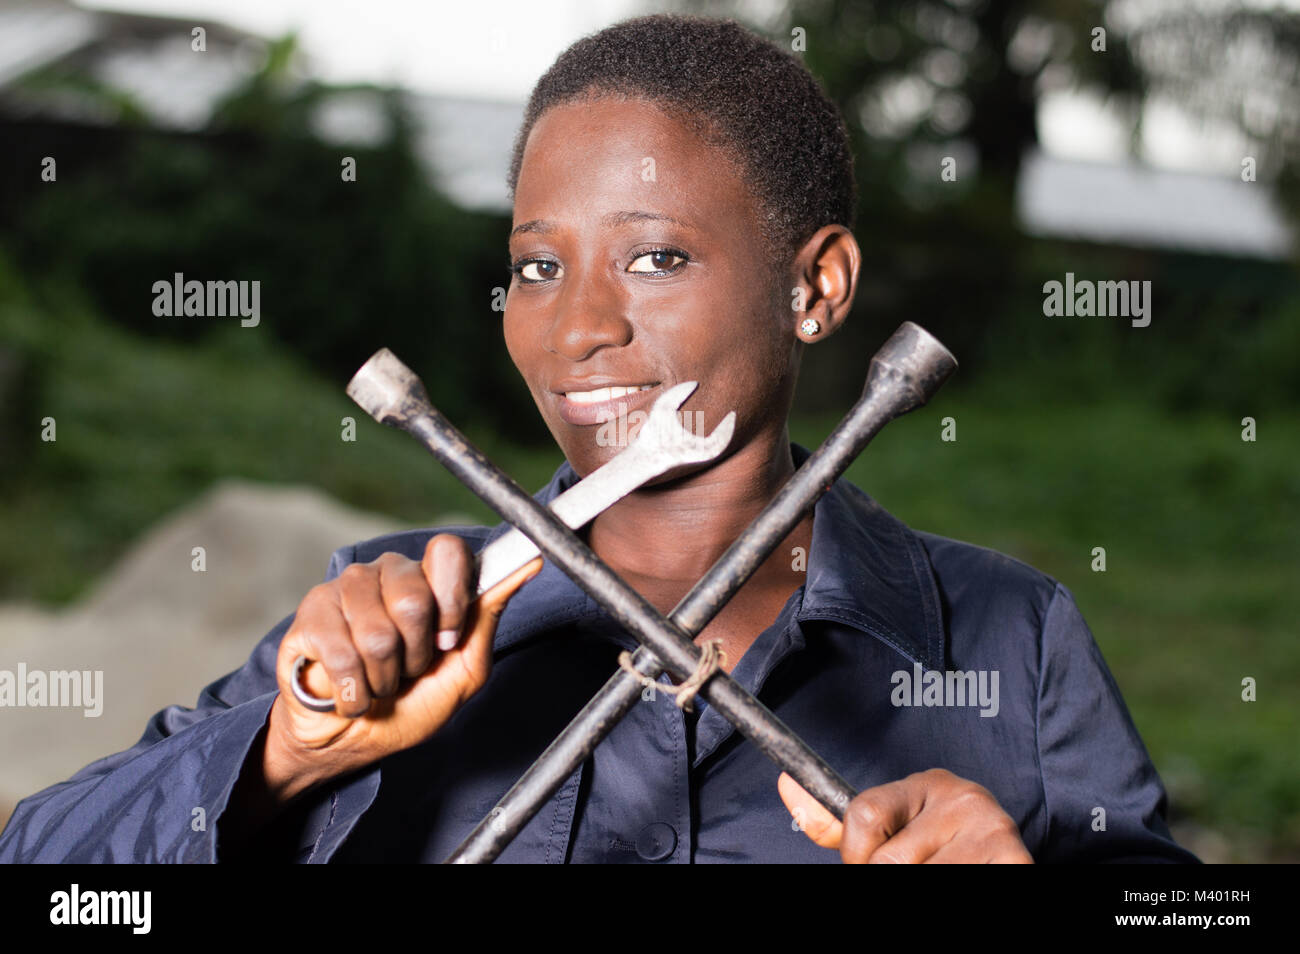 Young smiling mechanic showing her tools in her outdoor studio. - Stock Image